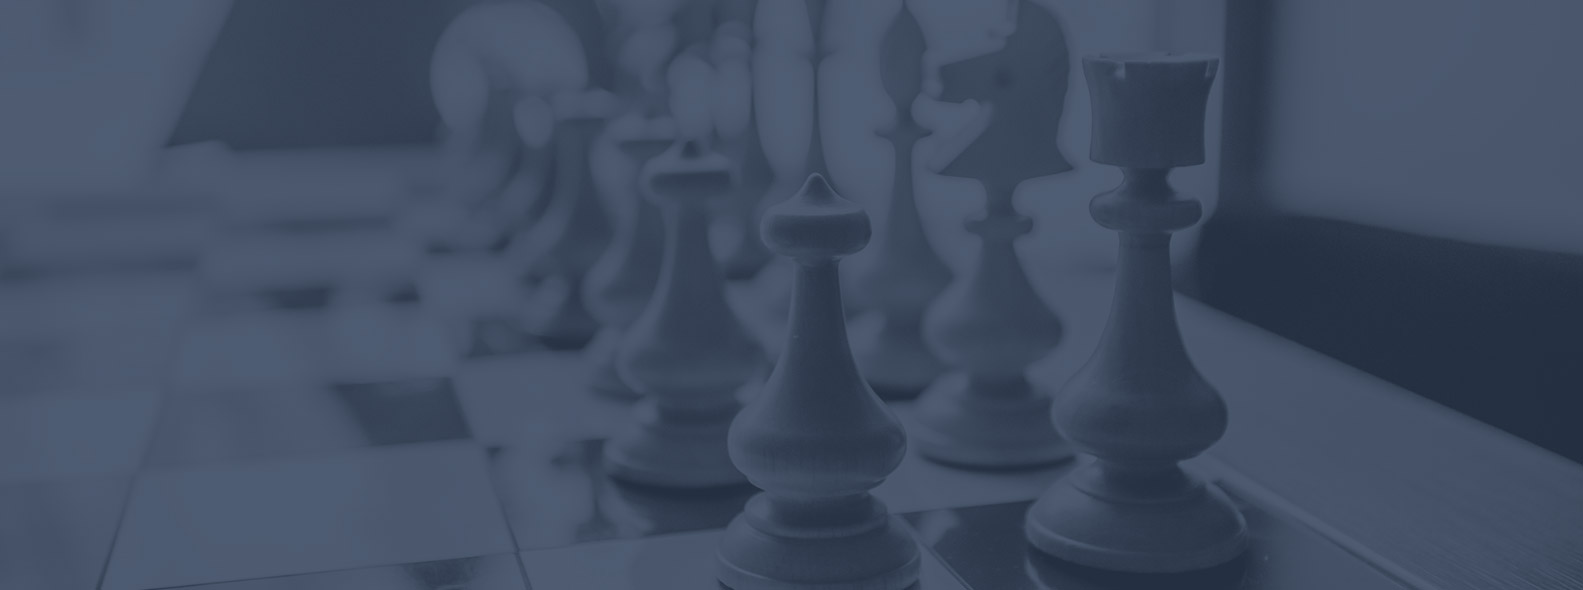 Chess pieces representing building buy-side due diligence strategy for the next move on your company's chess board